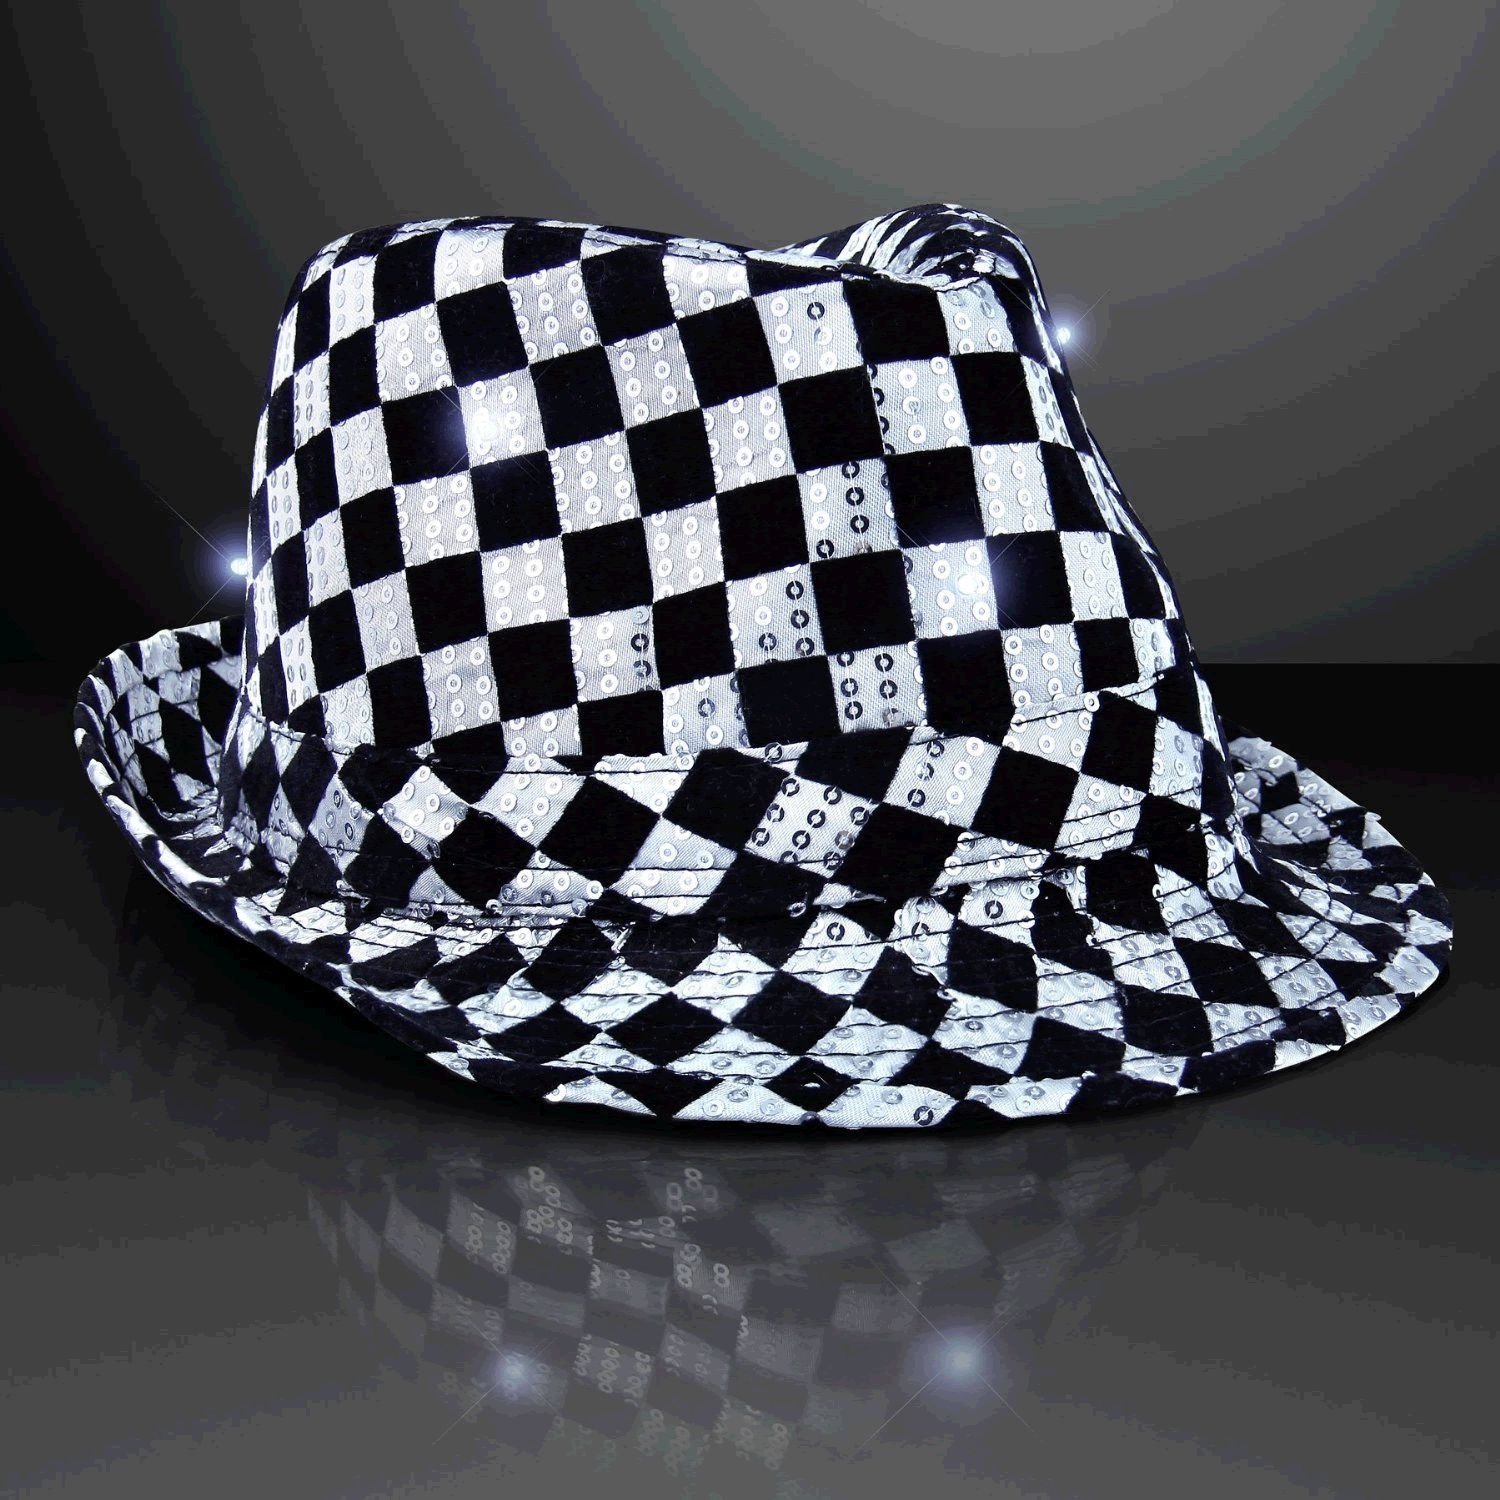 blinkee LED Flashing Fedora Hat with Checkered Sequins by